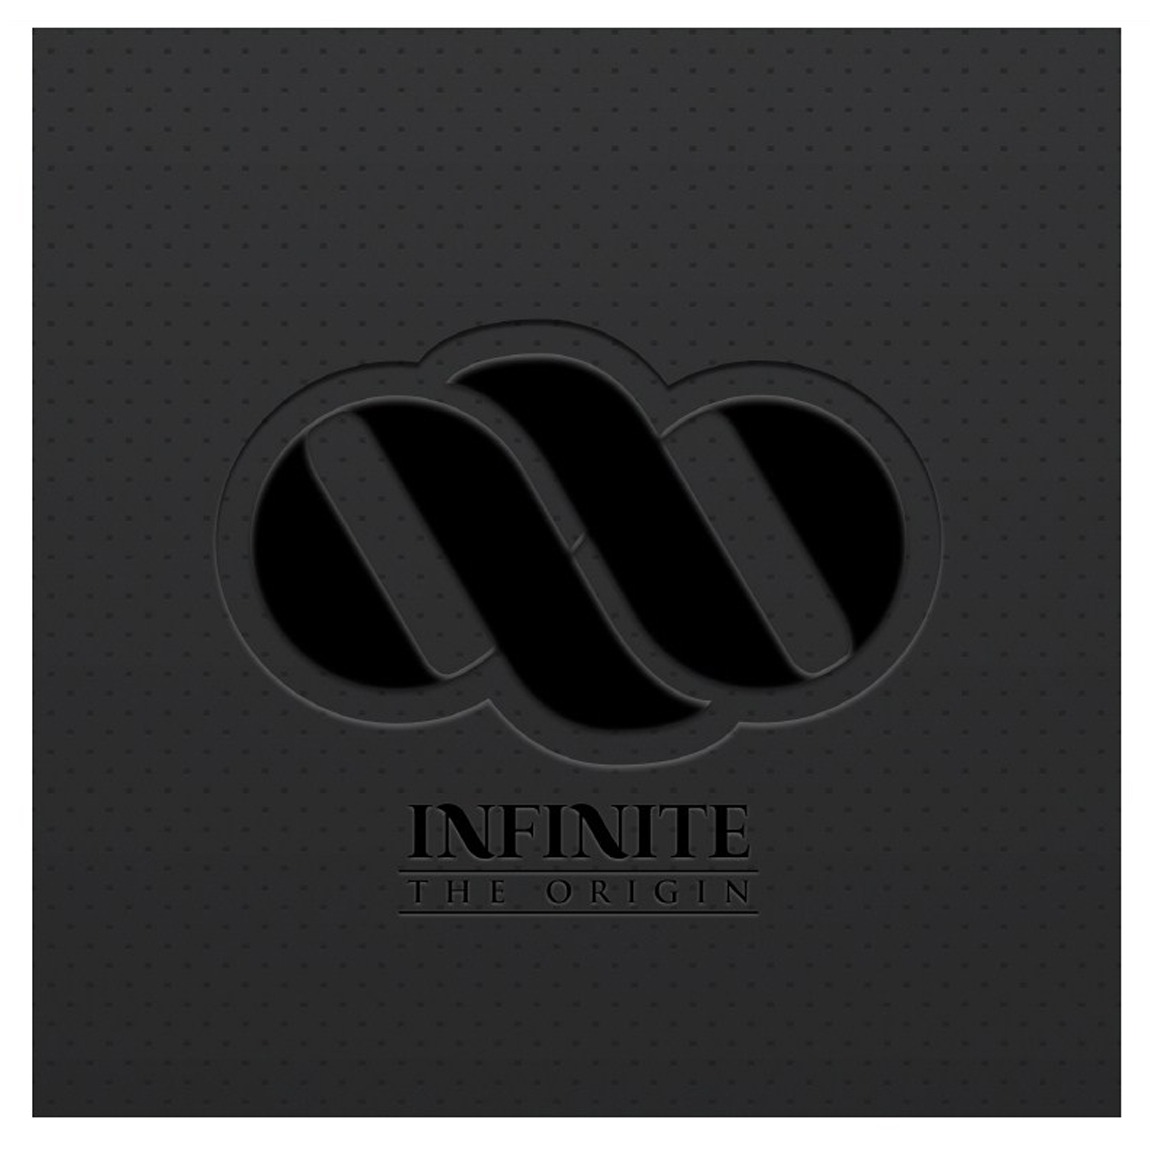 Details about  INFINITE  Limited Edition - The Origin  K-Pop Album  3    Infinite The Origin Logo